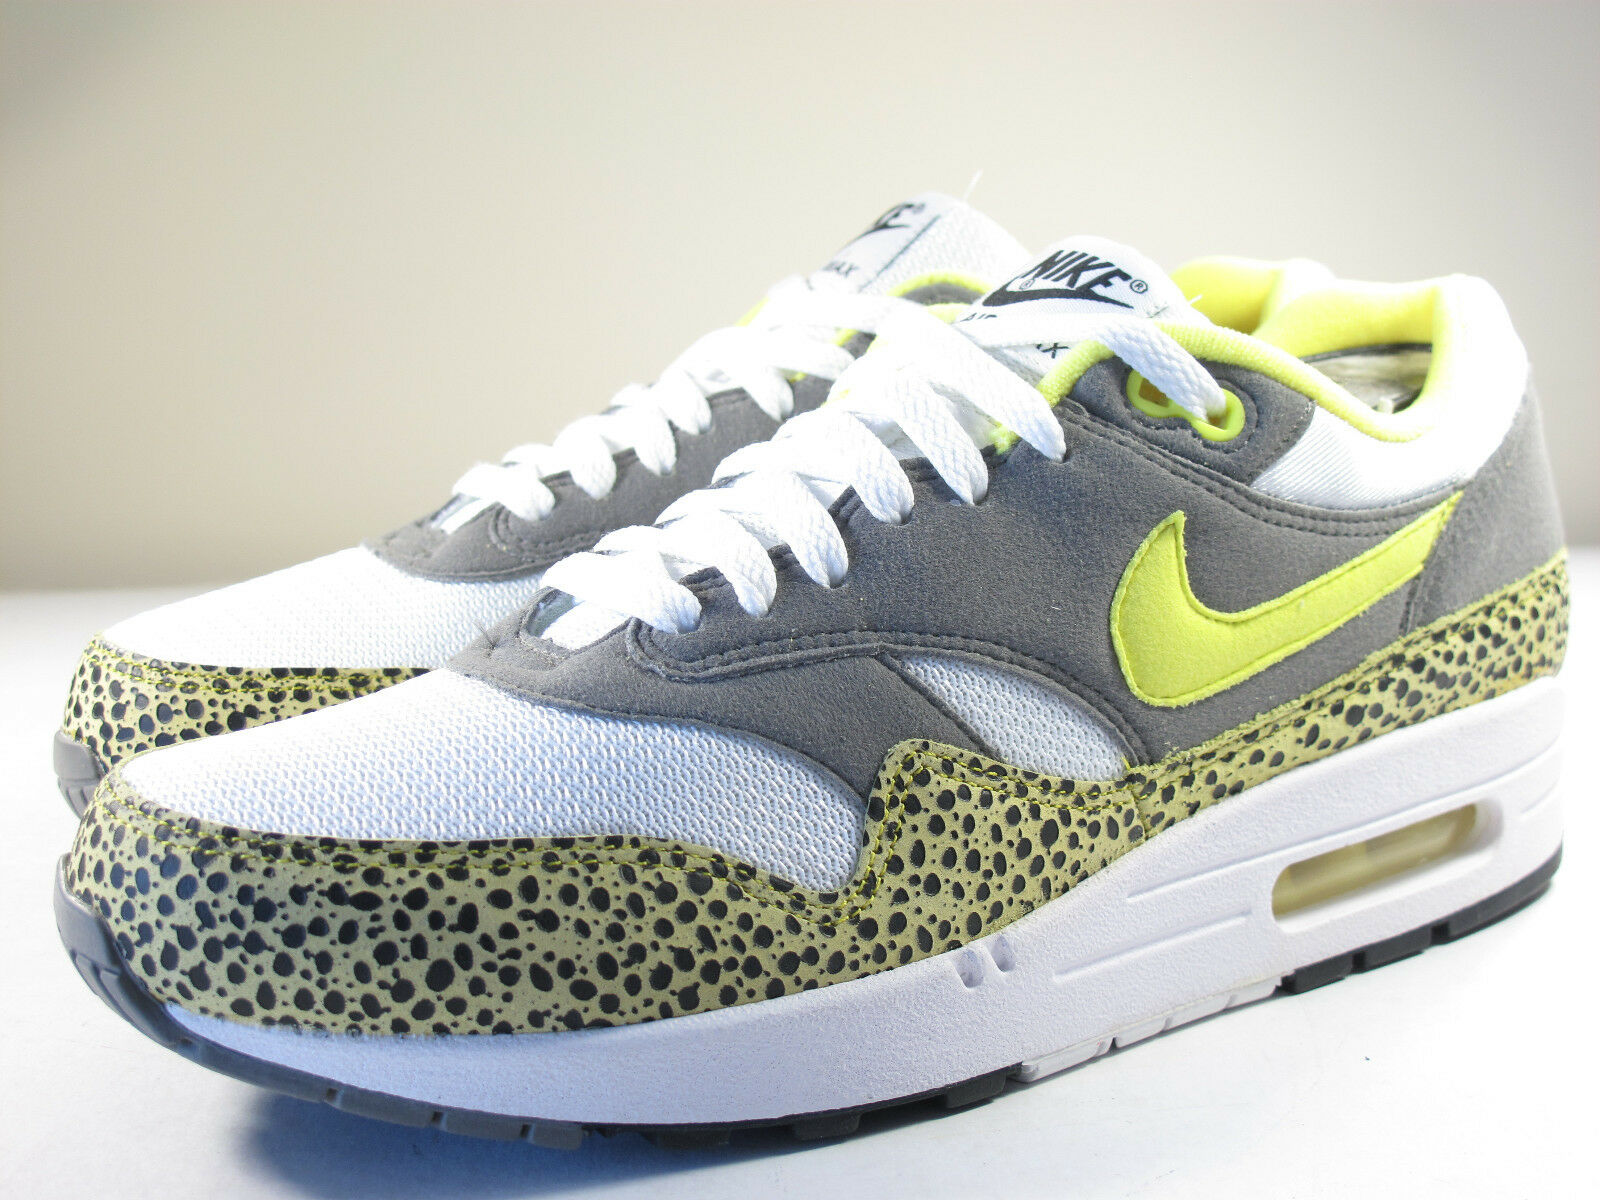 4836db56f0 DS NIKE 2009 AIR MAX 1 SAFARI VOLTAGE YELLOW 9.5 ATMOS PATTA INFRARED  HYPERFUSE